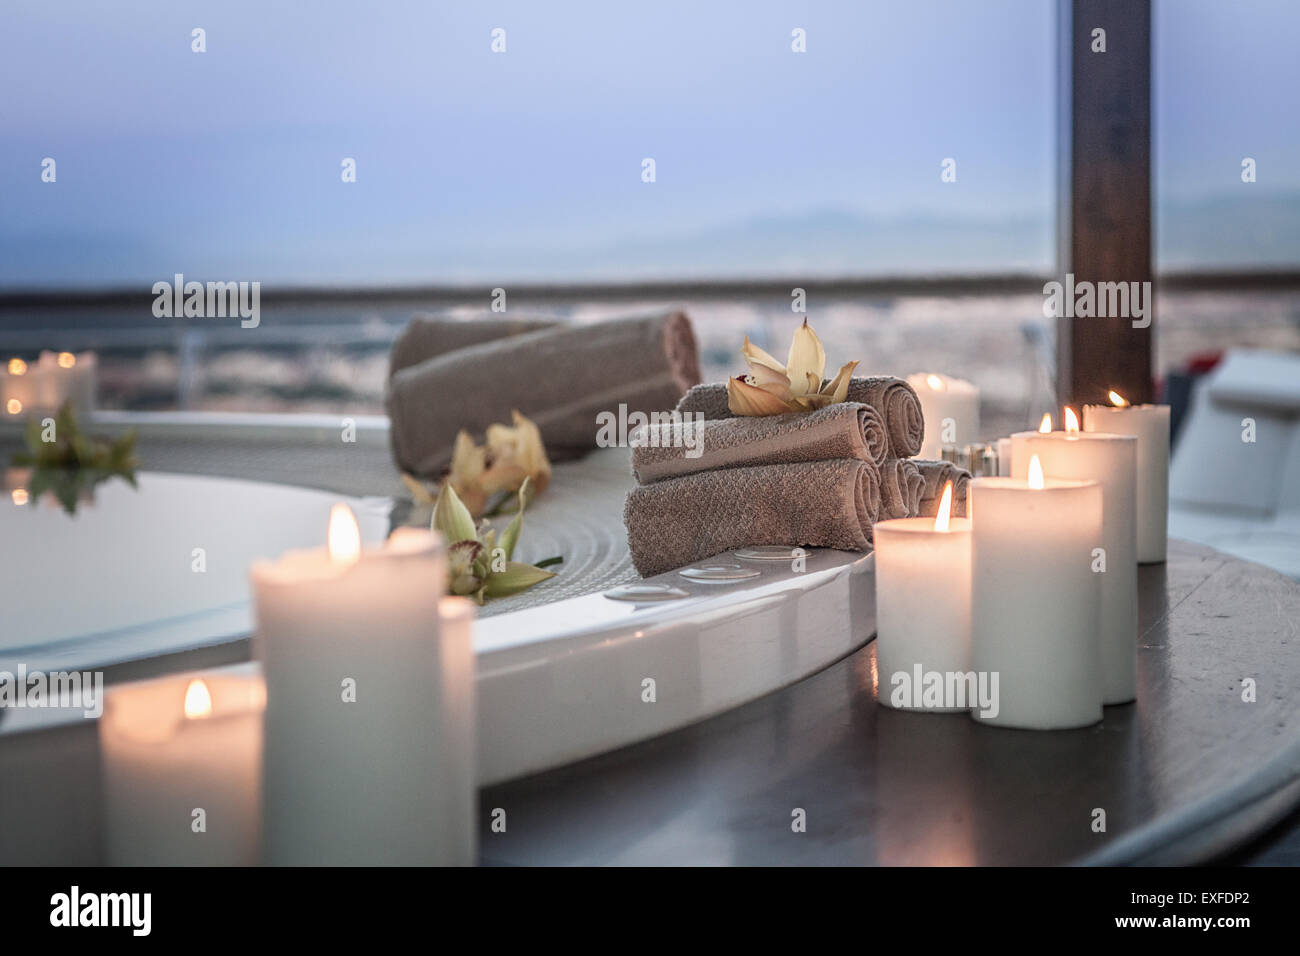 Bath and candles in luxury hotel room - Stock Image